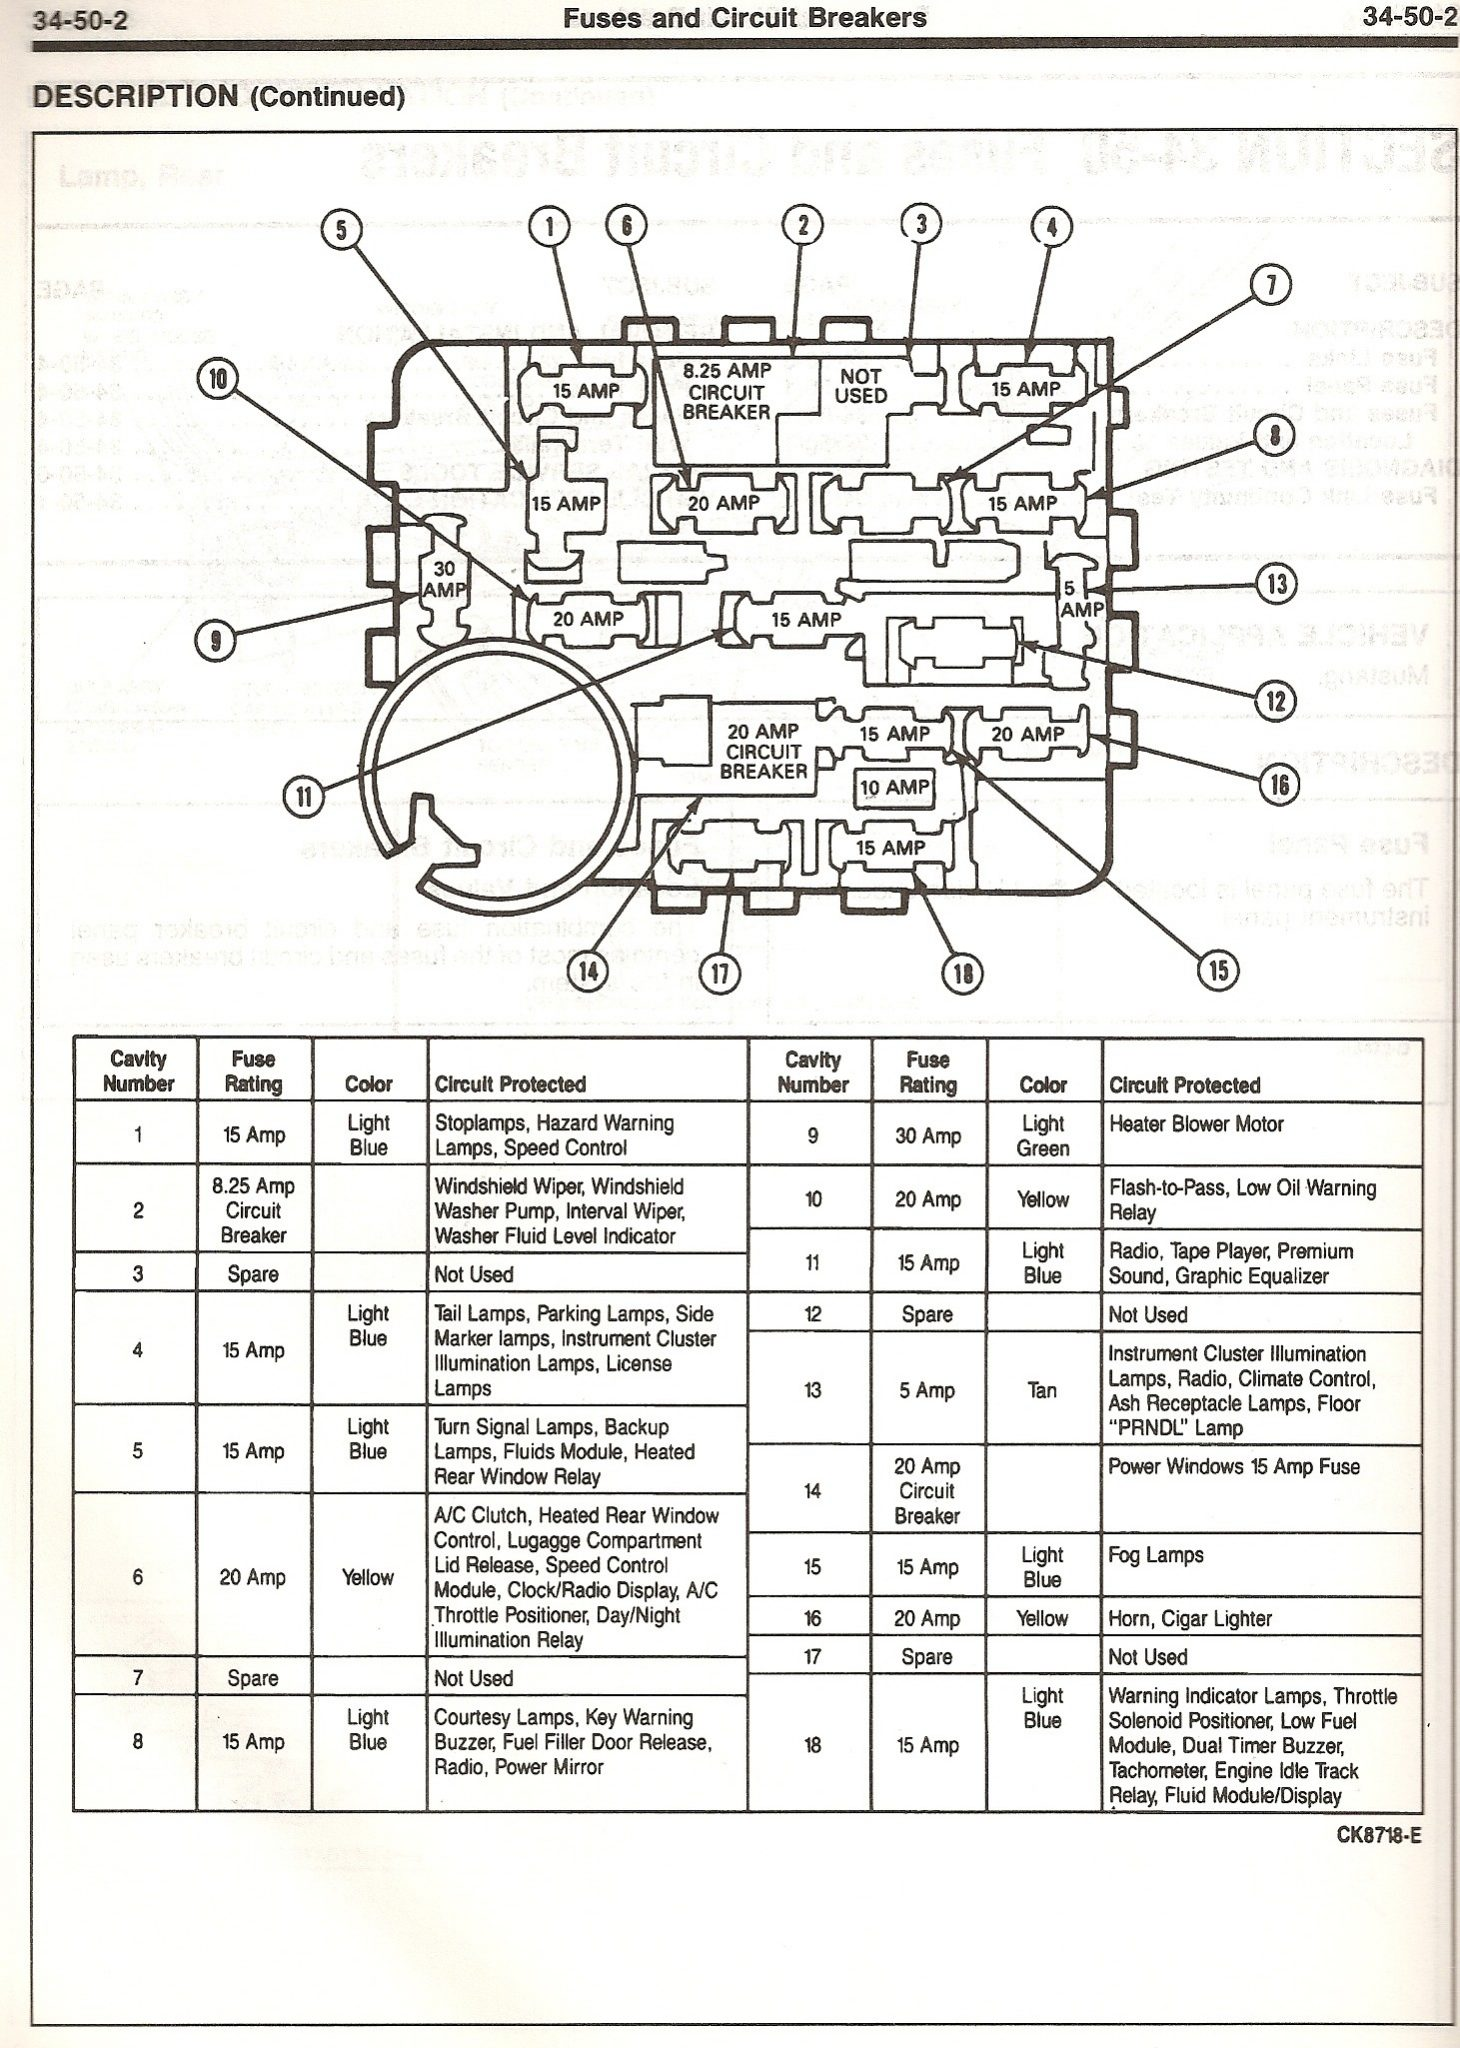 small resolution of 93 crown victoria fuse box simple wiring schema 2007 crown victoria fuse box diagram 1990 crown victoria fuse box diagram